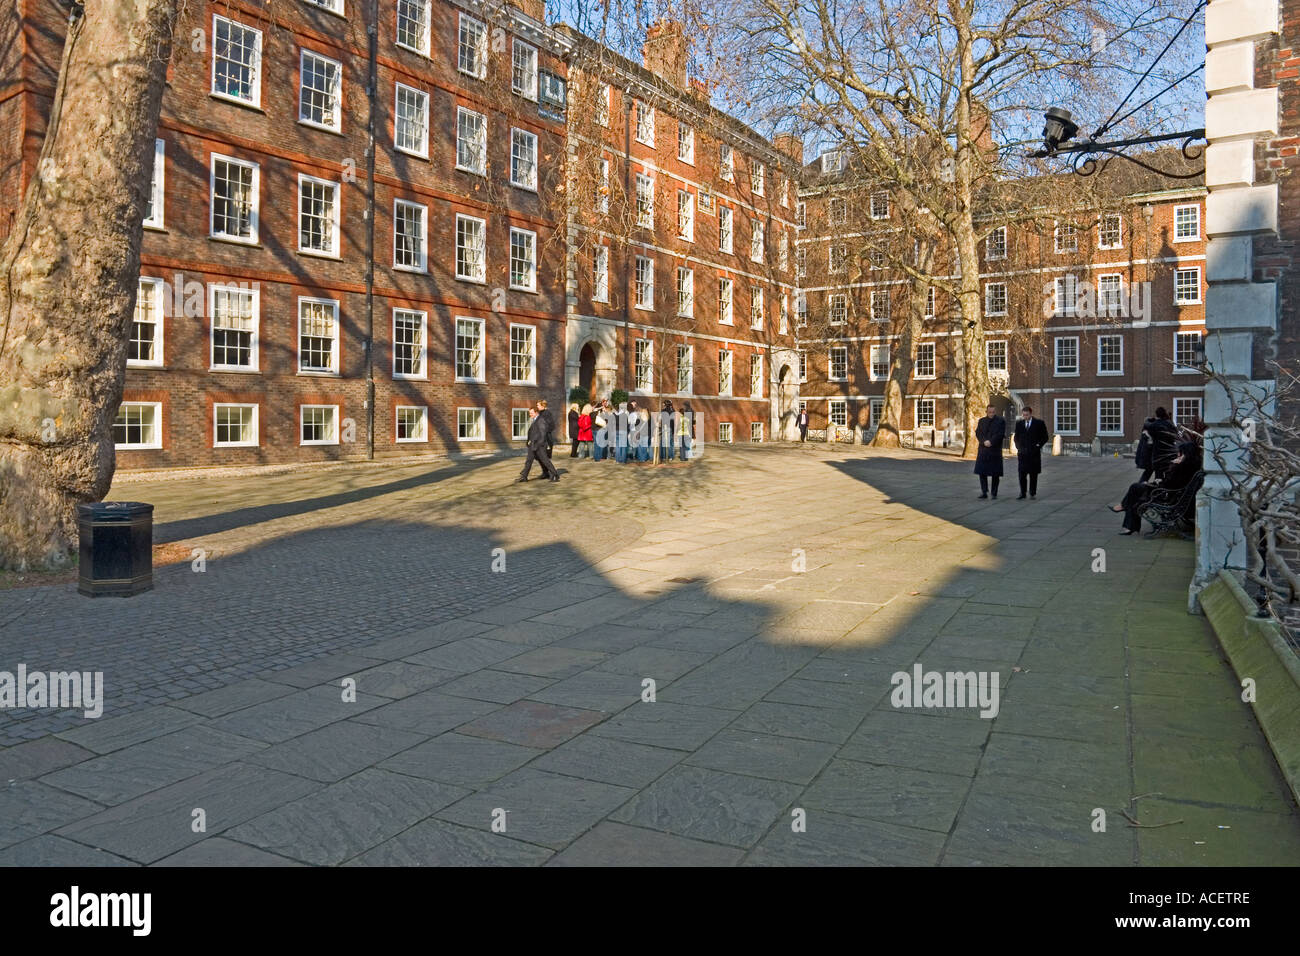 Fountain Court, Middle Temple, London WC2 - Stock Image